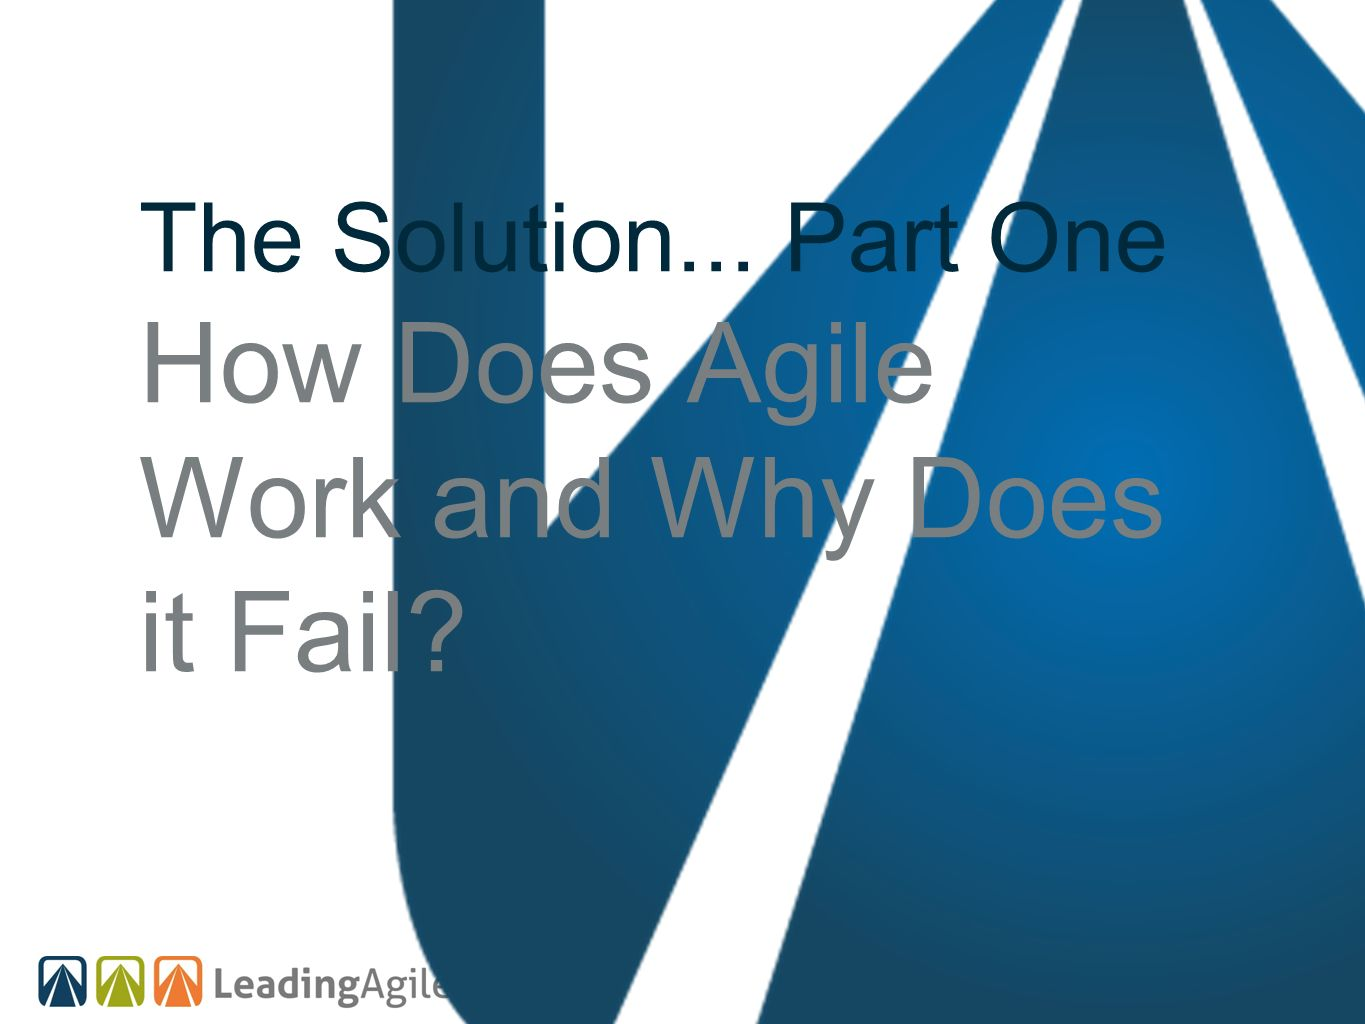 The Solution... Part One How Does Agile Work and Why Does it Fail